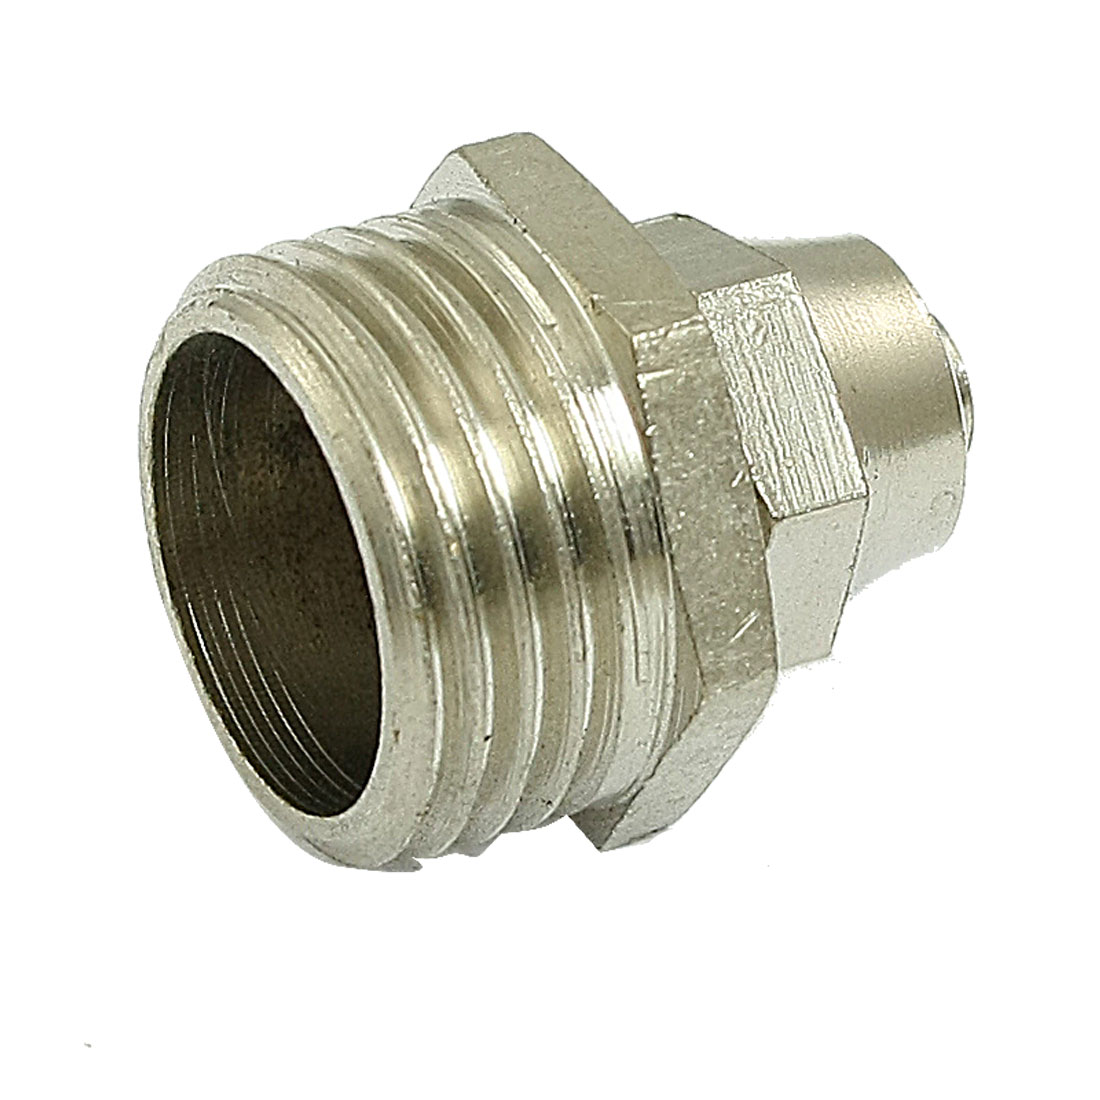 "2 Pcs 1/2"" Thread 6mm x 8mm Air Tube Straight Quick Coupling Fittings"